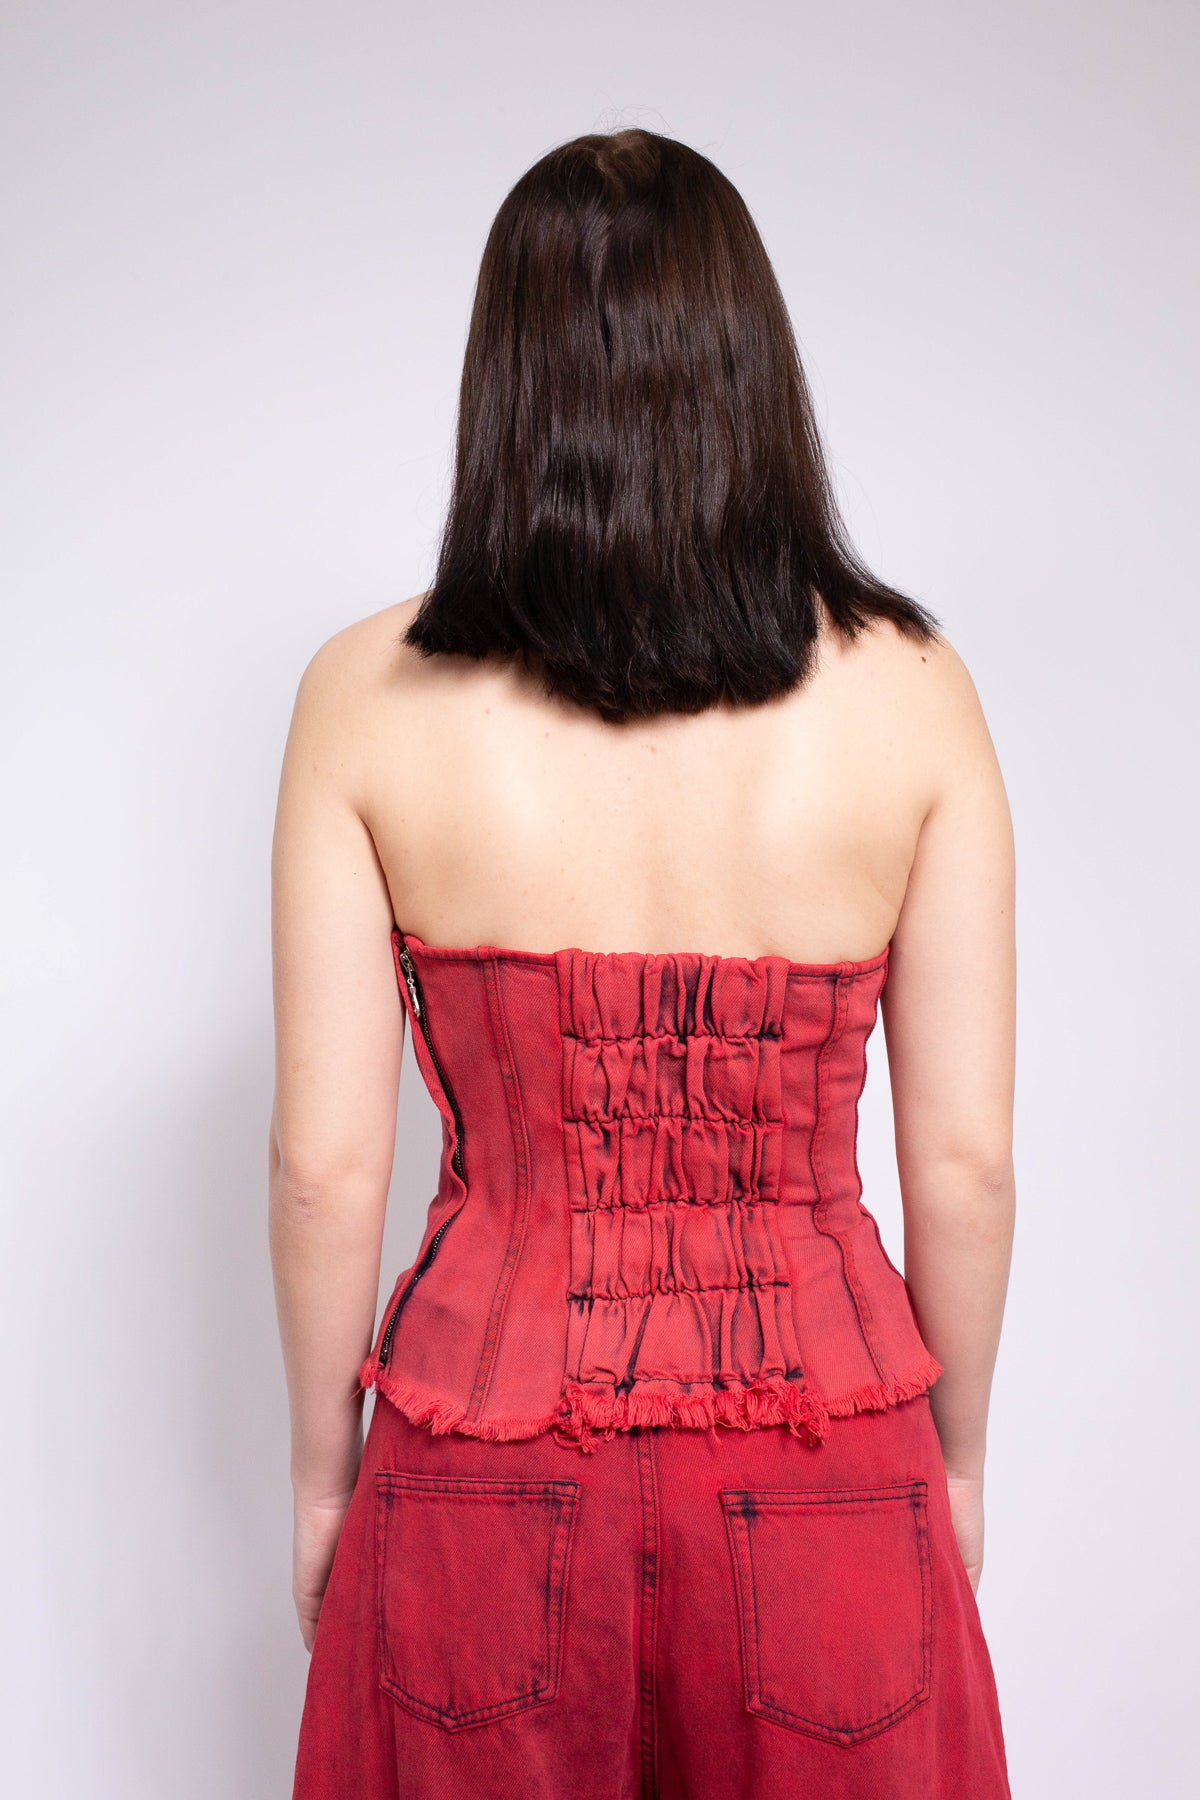 RED BRA CUP CORSET